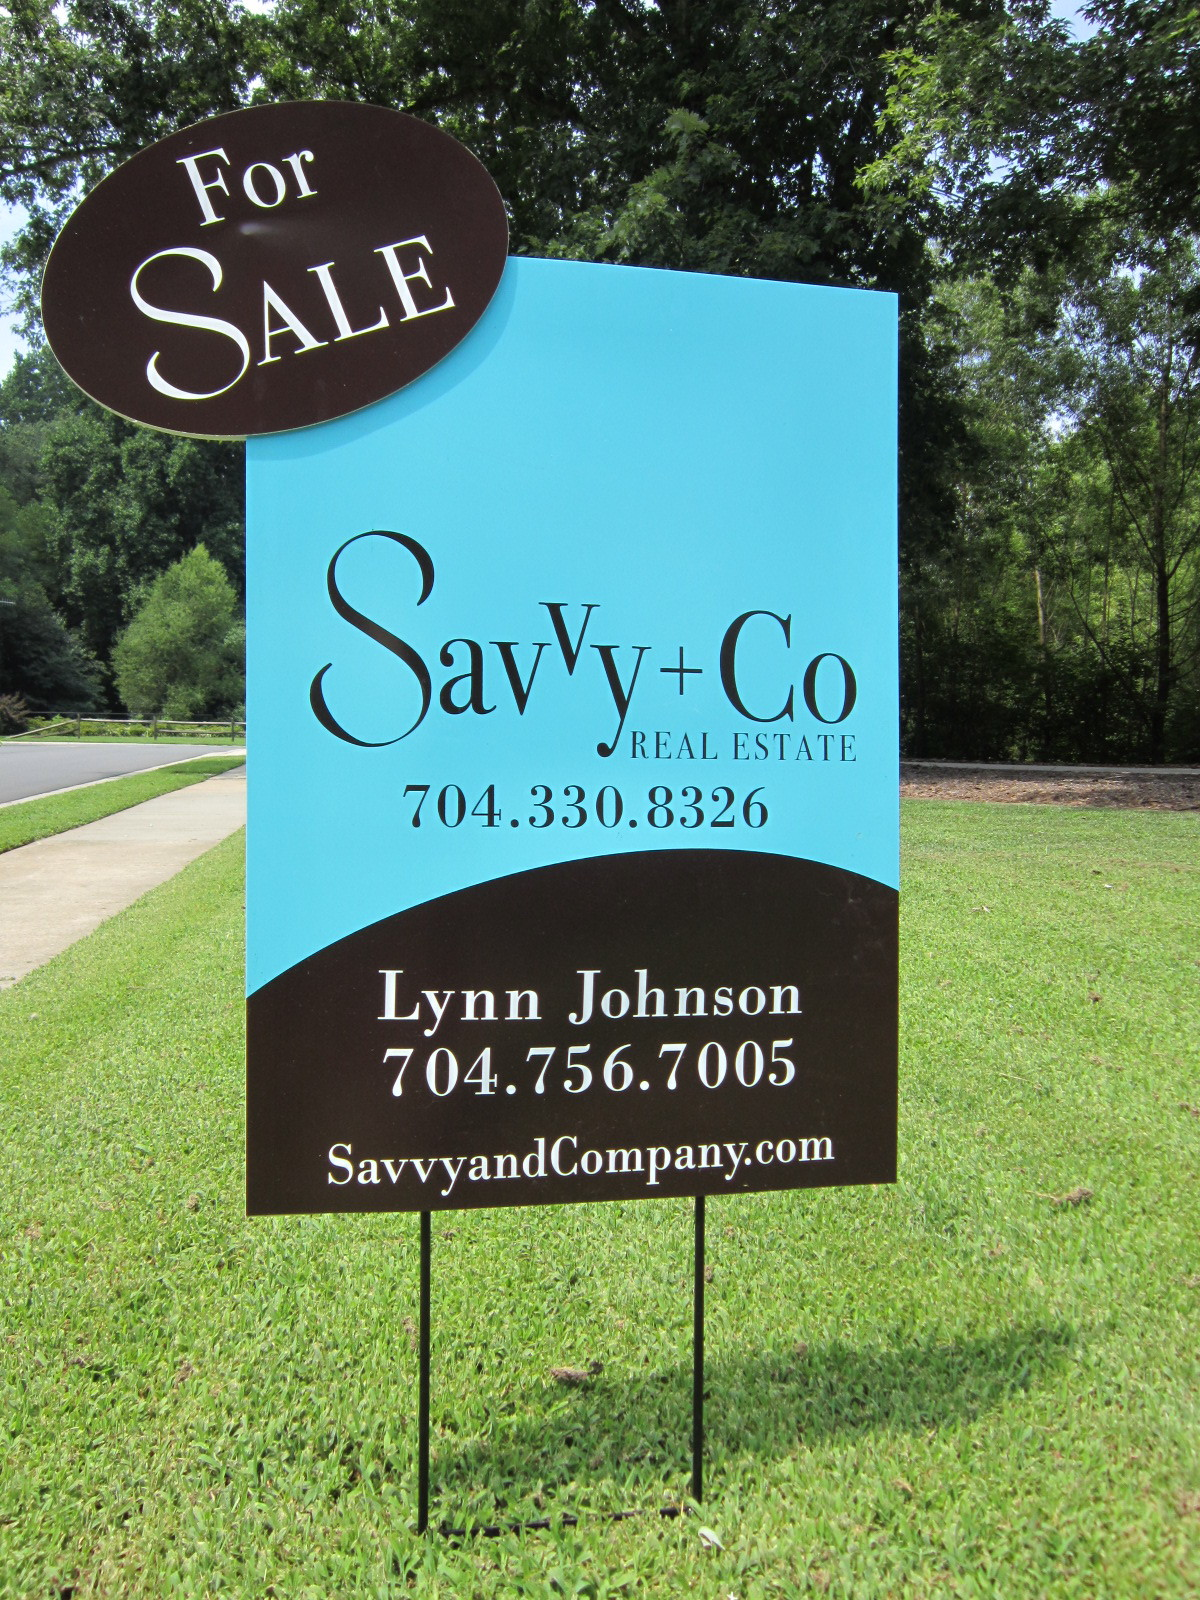 investments,foreclosure,interest rates,low,Ballantyne Buzz,Southpark,Ballantyne Country Club